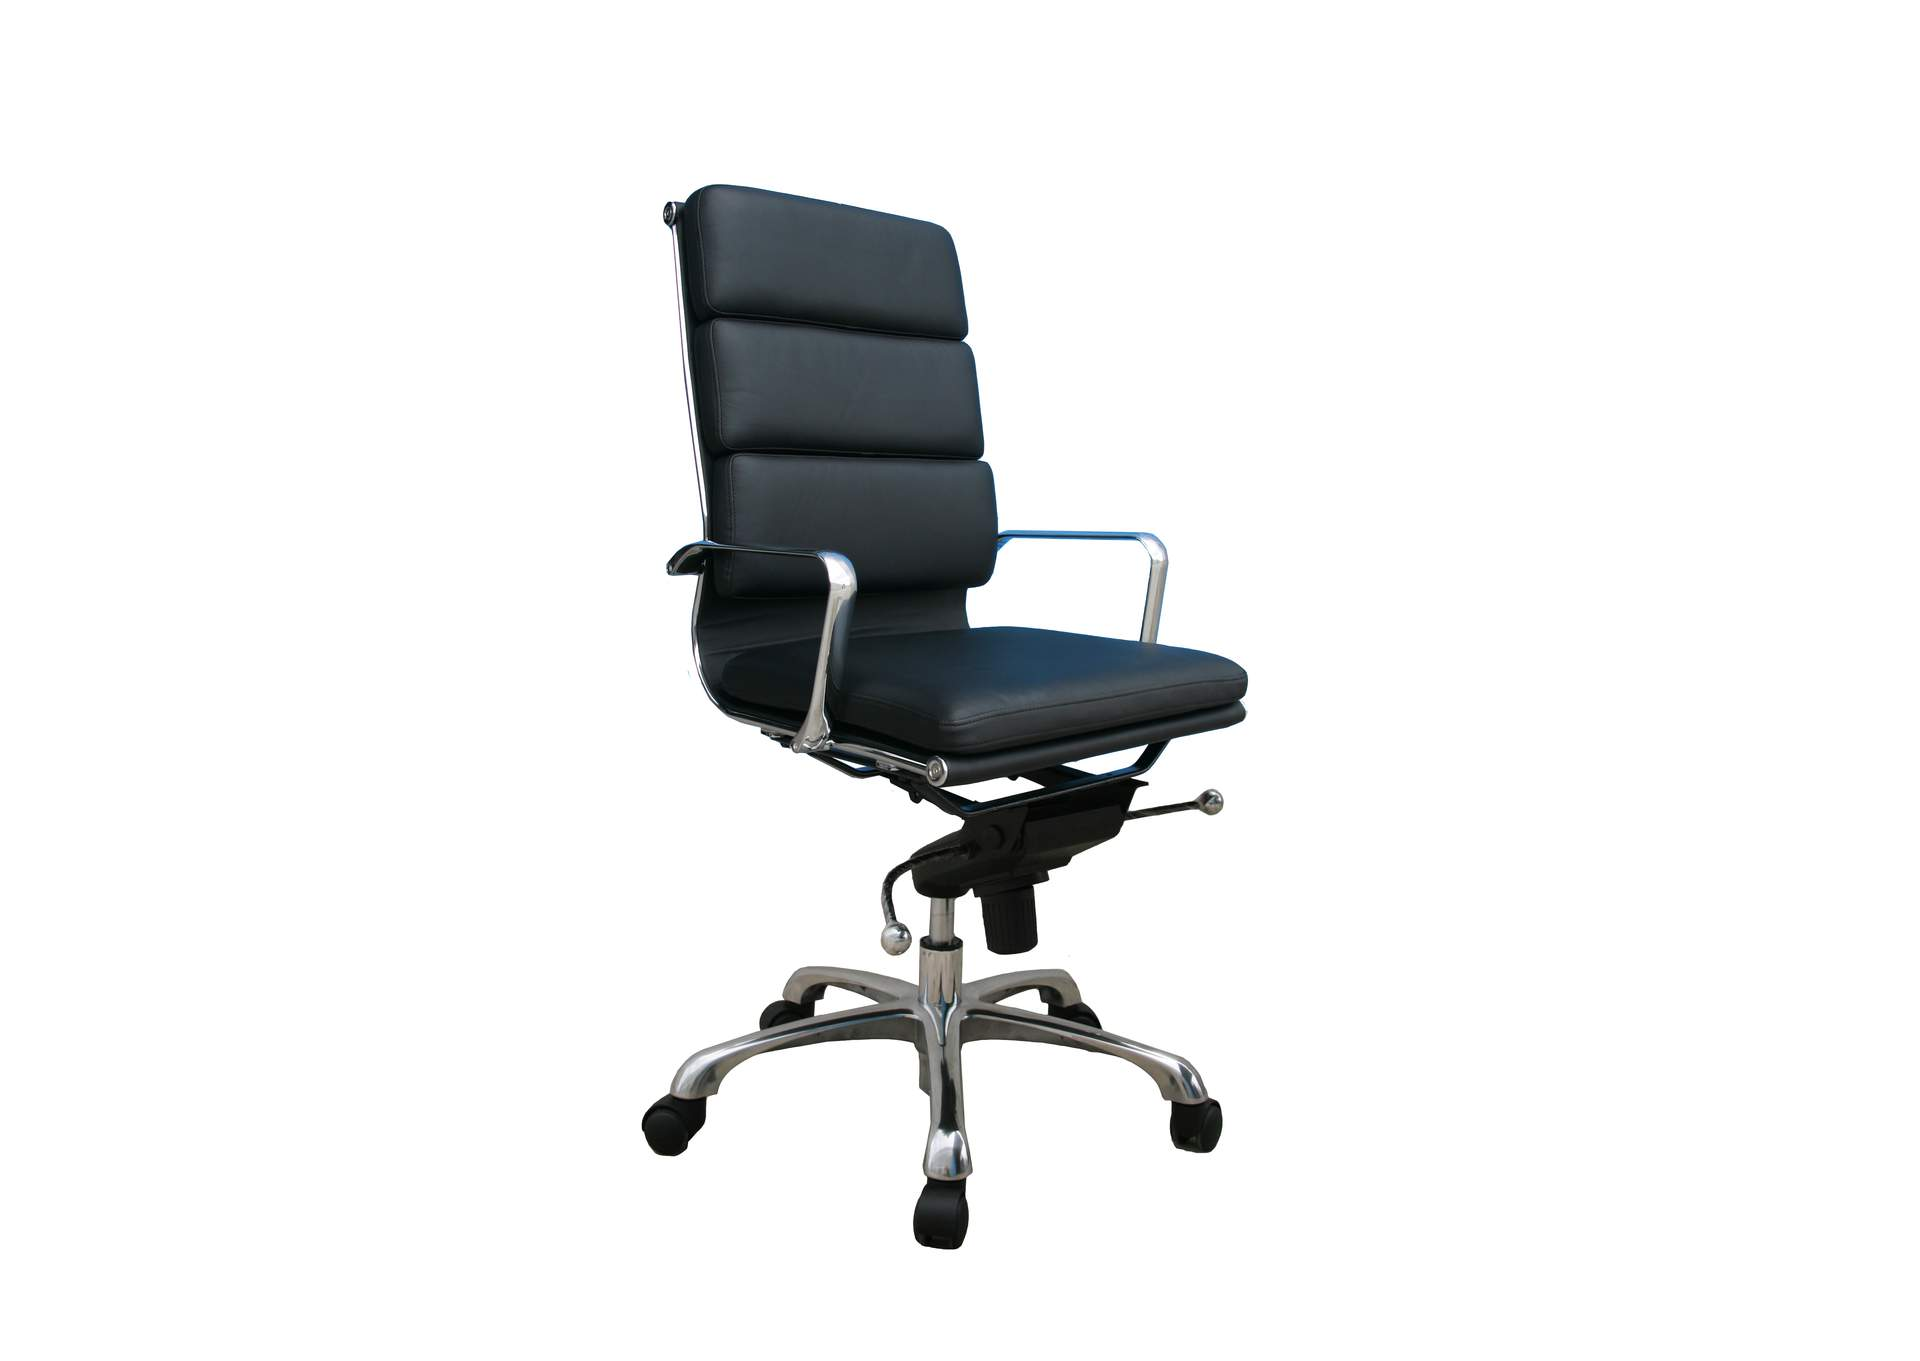 Plush Black High Back Office Chair Best Buy Furniture And Mattress